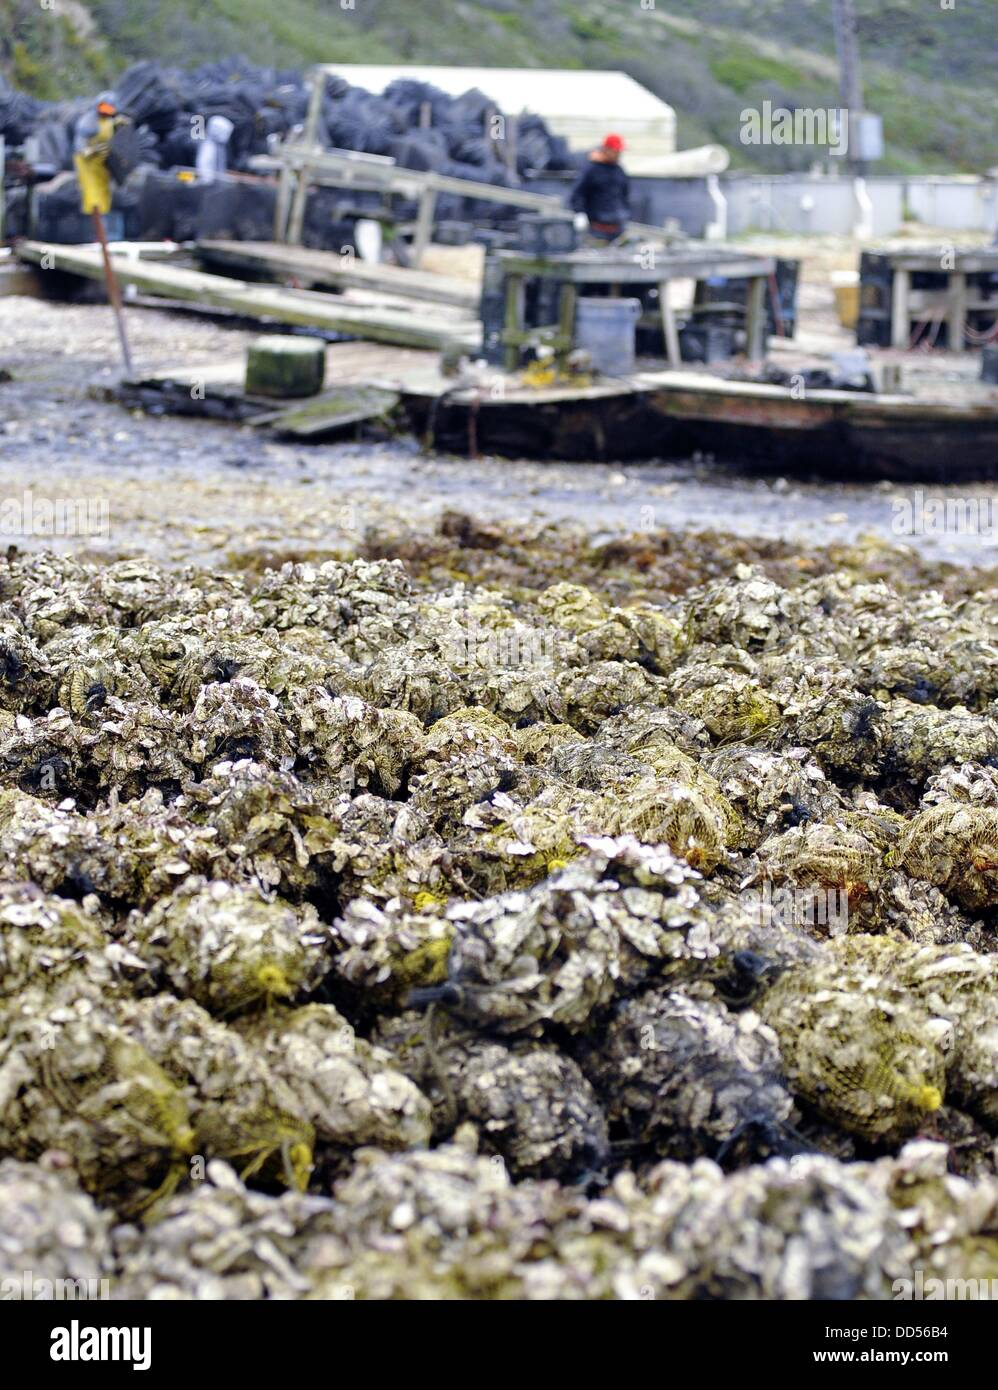 May 23, 2013 - Inverness, California, USA - Bags of shells are seen at Drakes Bay Oyster Farm on May 09, 2013 in - Stock Image